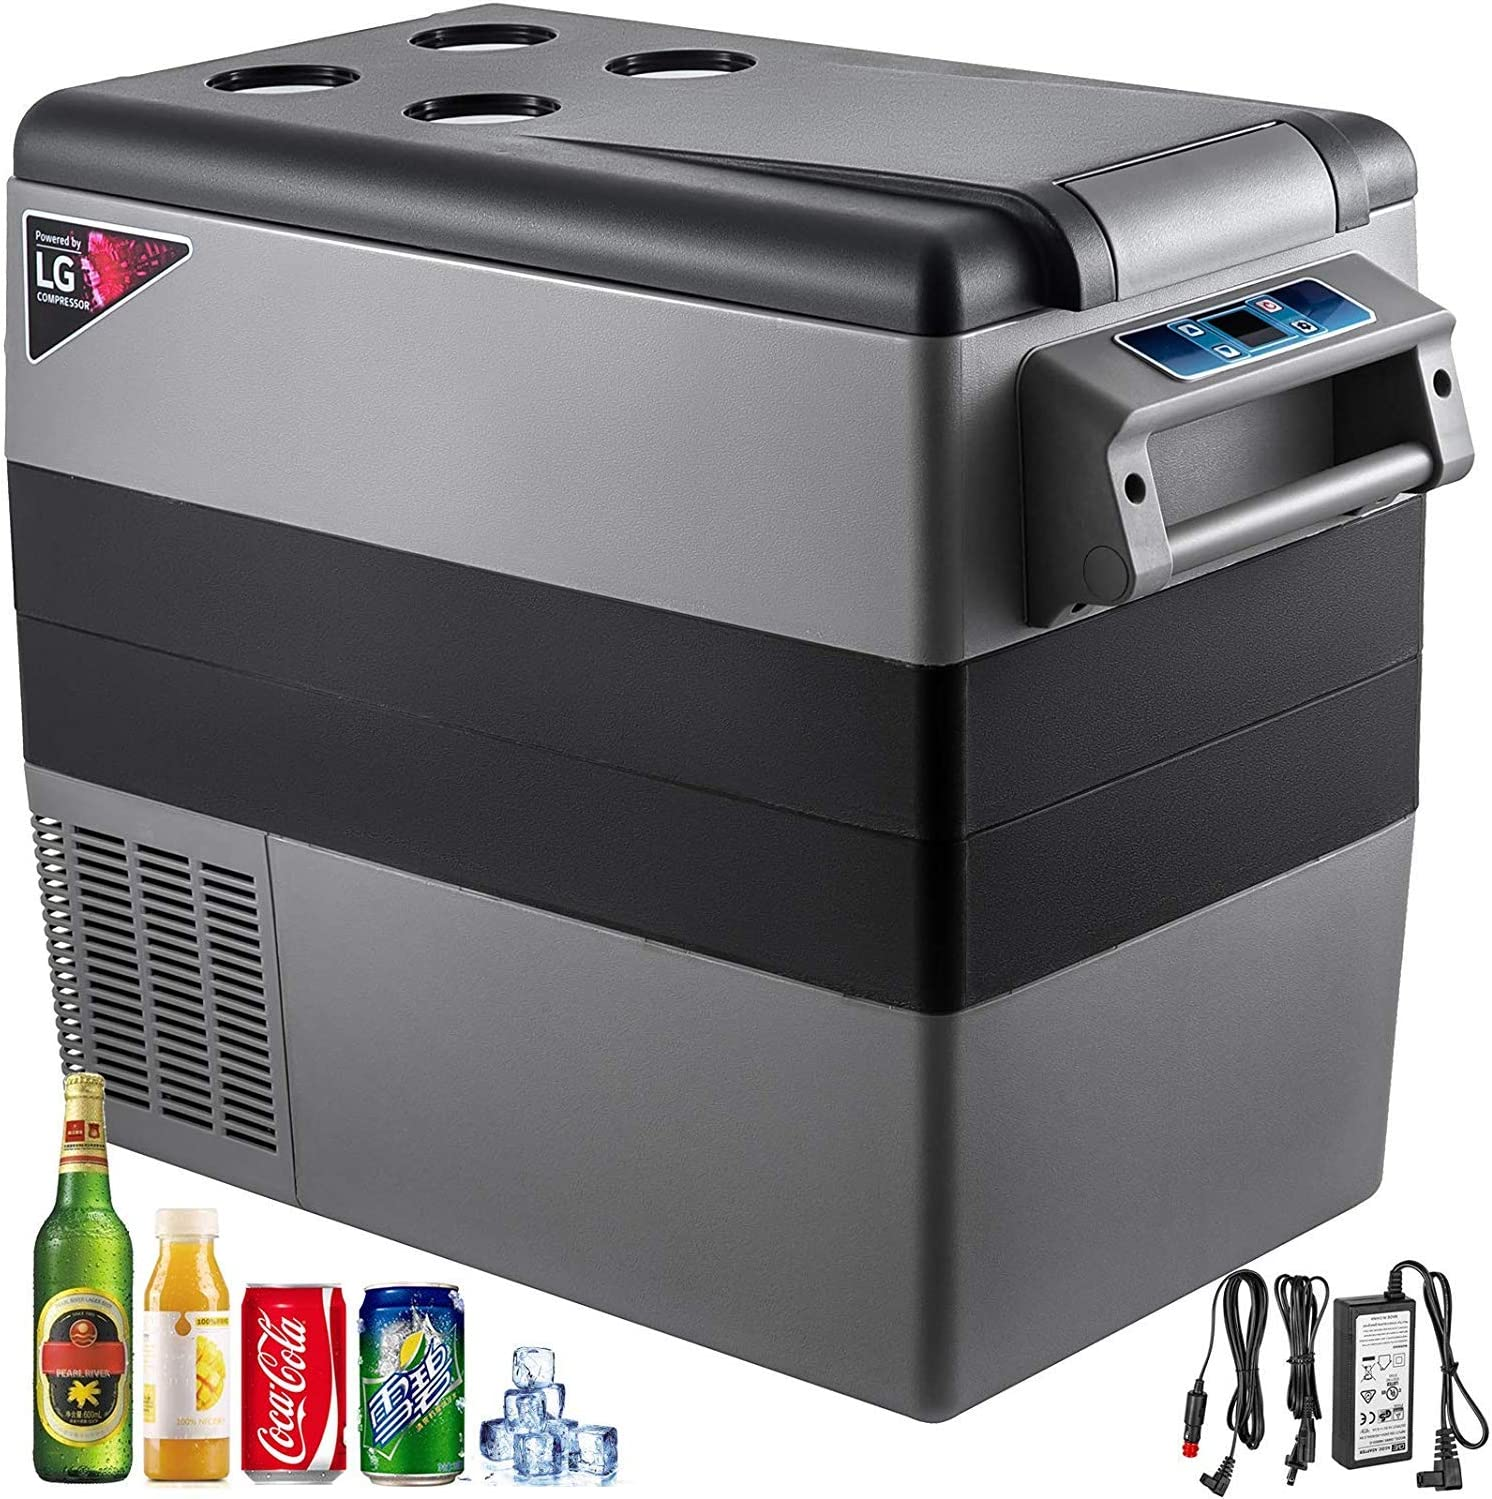 VBENLEM 55L Compressor Portable Small Refrigerator 12V DC and 110V AC Car Refrigerator Freezer Vehicle Car Truck RV Boat Mini Electric Cooler for Driving Travel Fishing Outdoor and Home Use